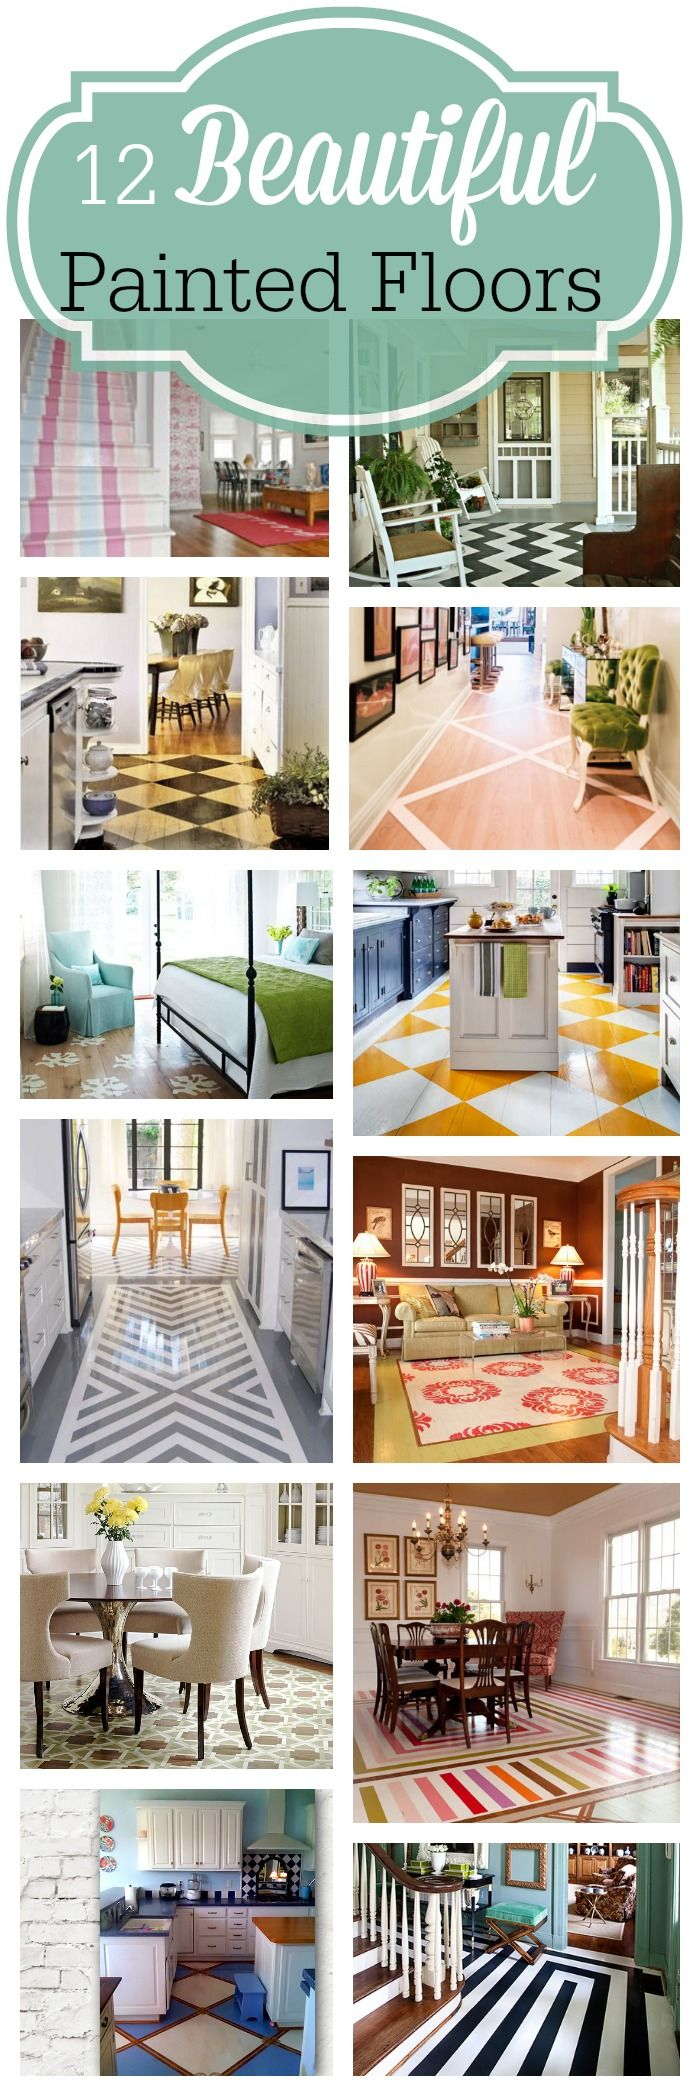 Beautiful painted floors!